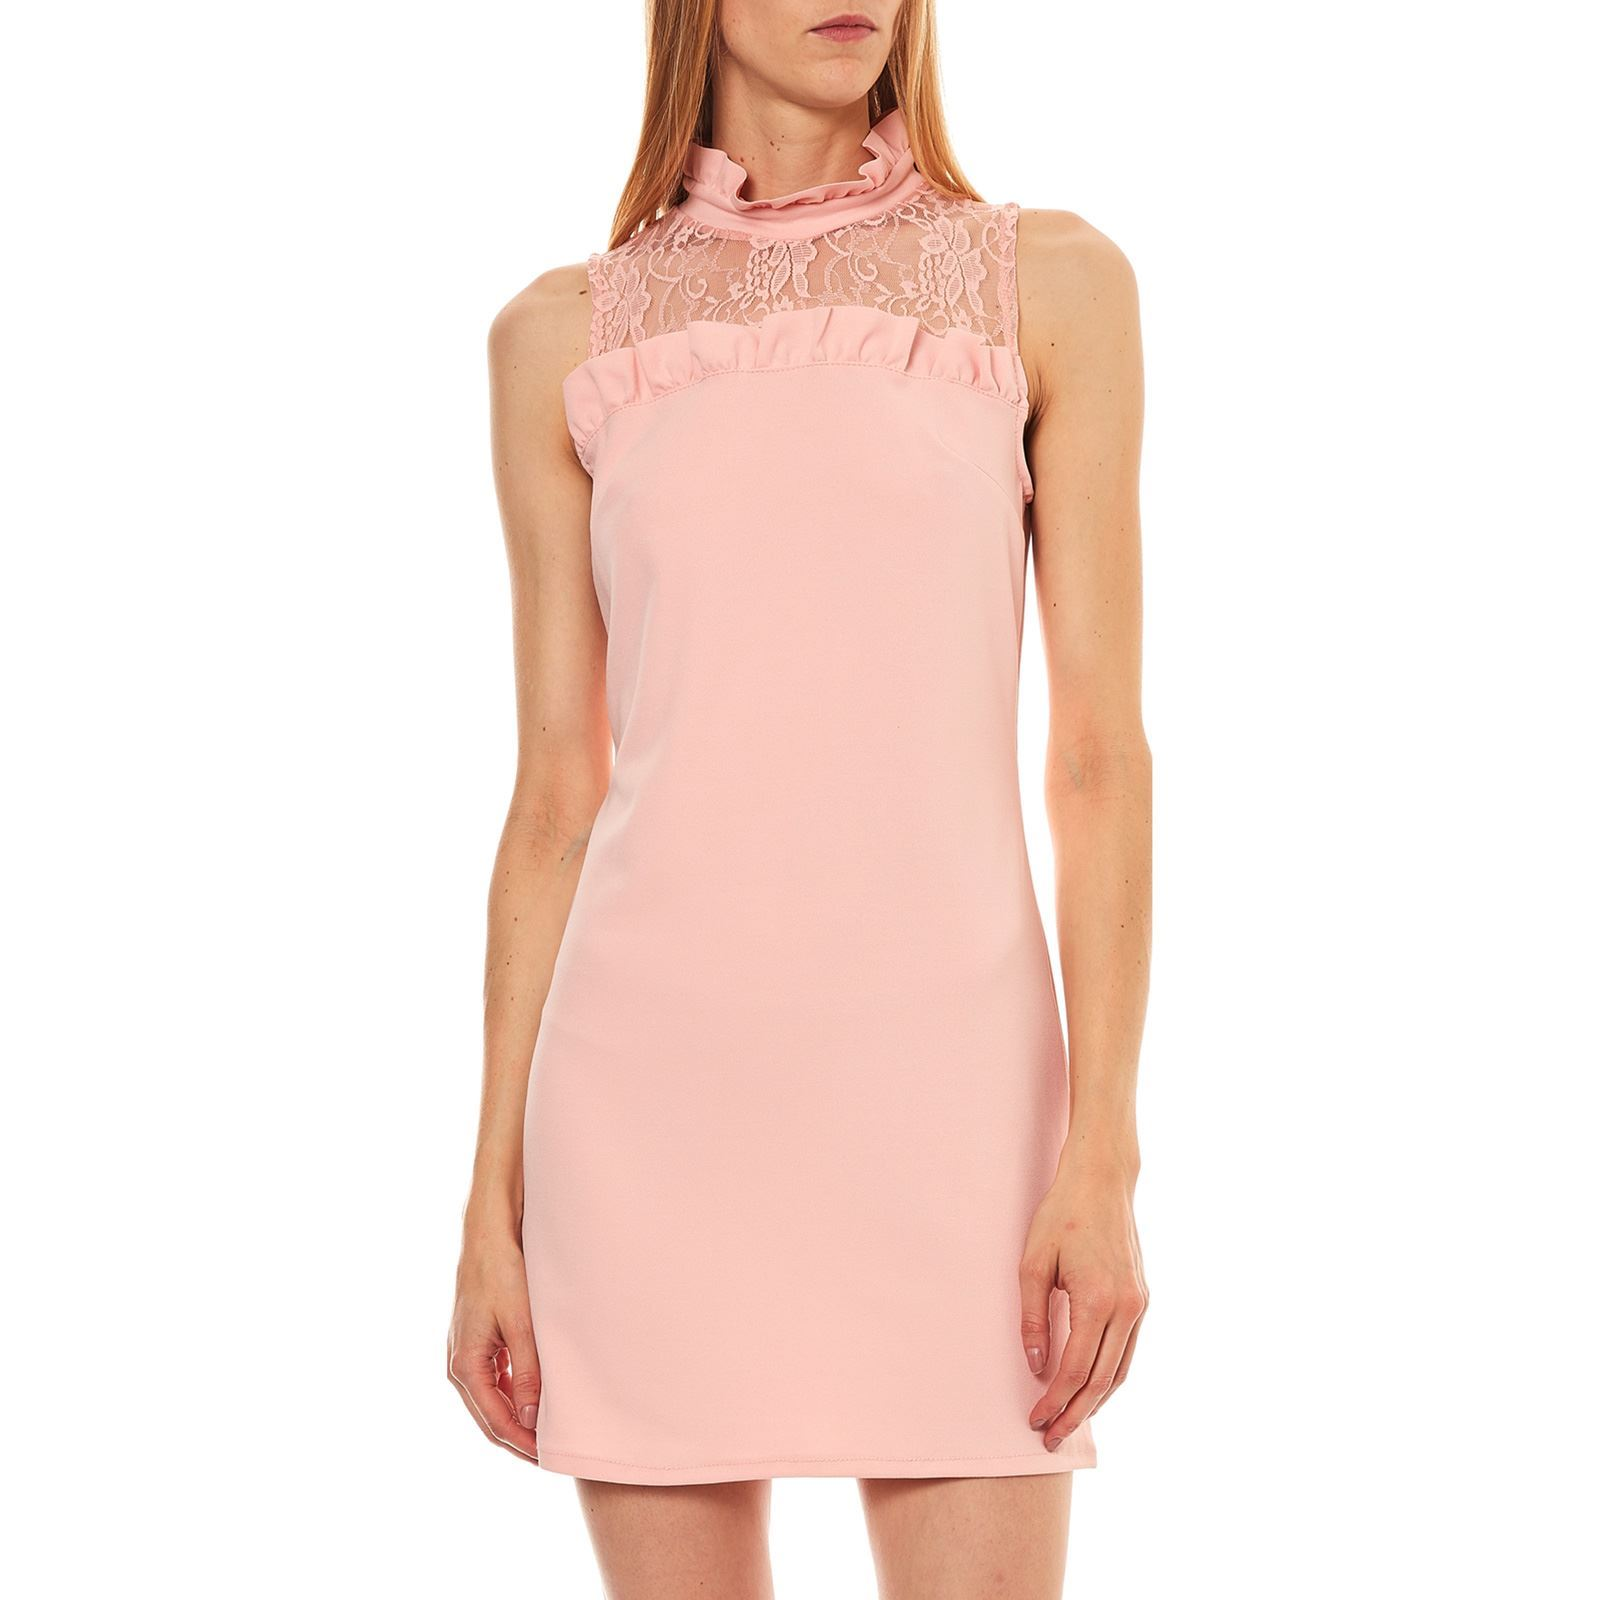 Robe Rose V DroiteFemme DroiteFemme Robe Rose gYbf76y